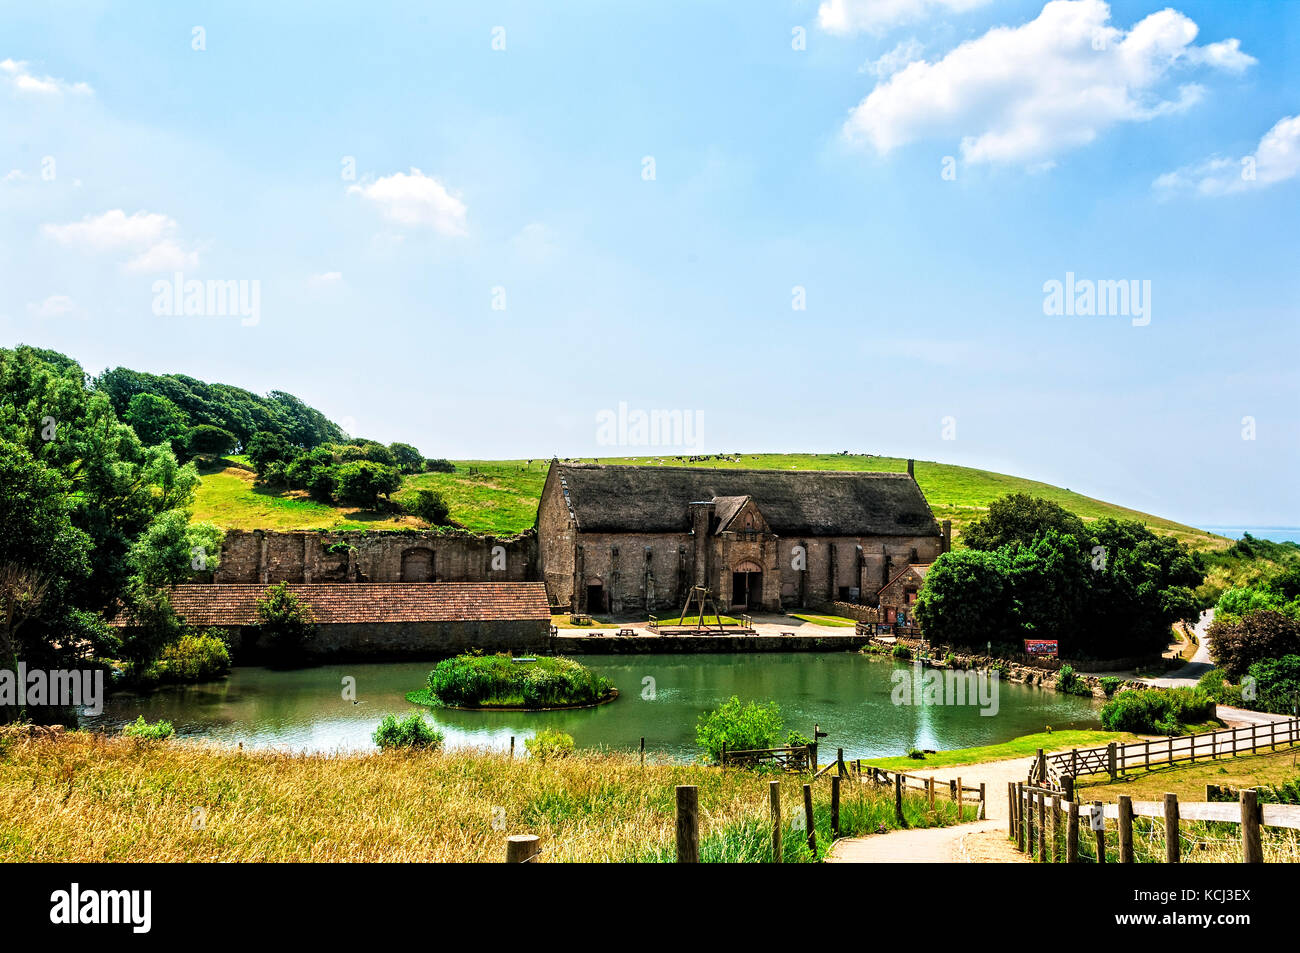 A well preserved 14th century tithe barn which survived the dissolution of the monasteries because of its usefulness - Stock Image